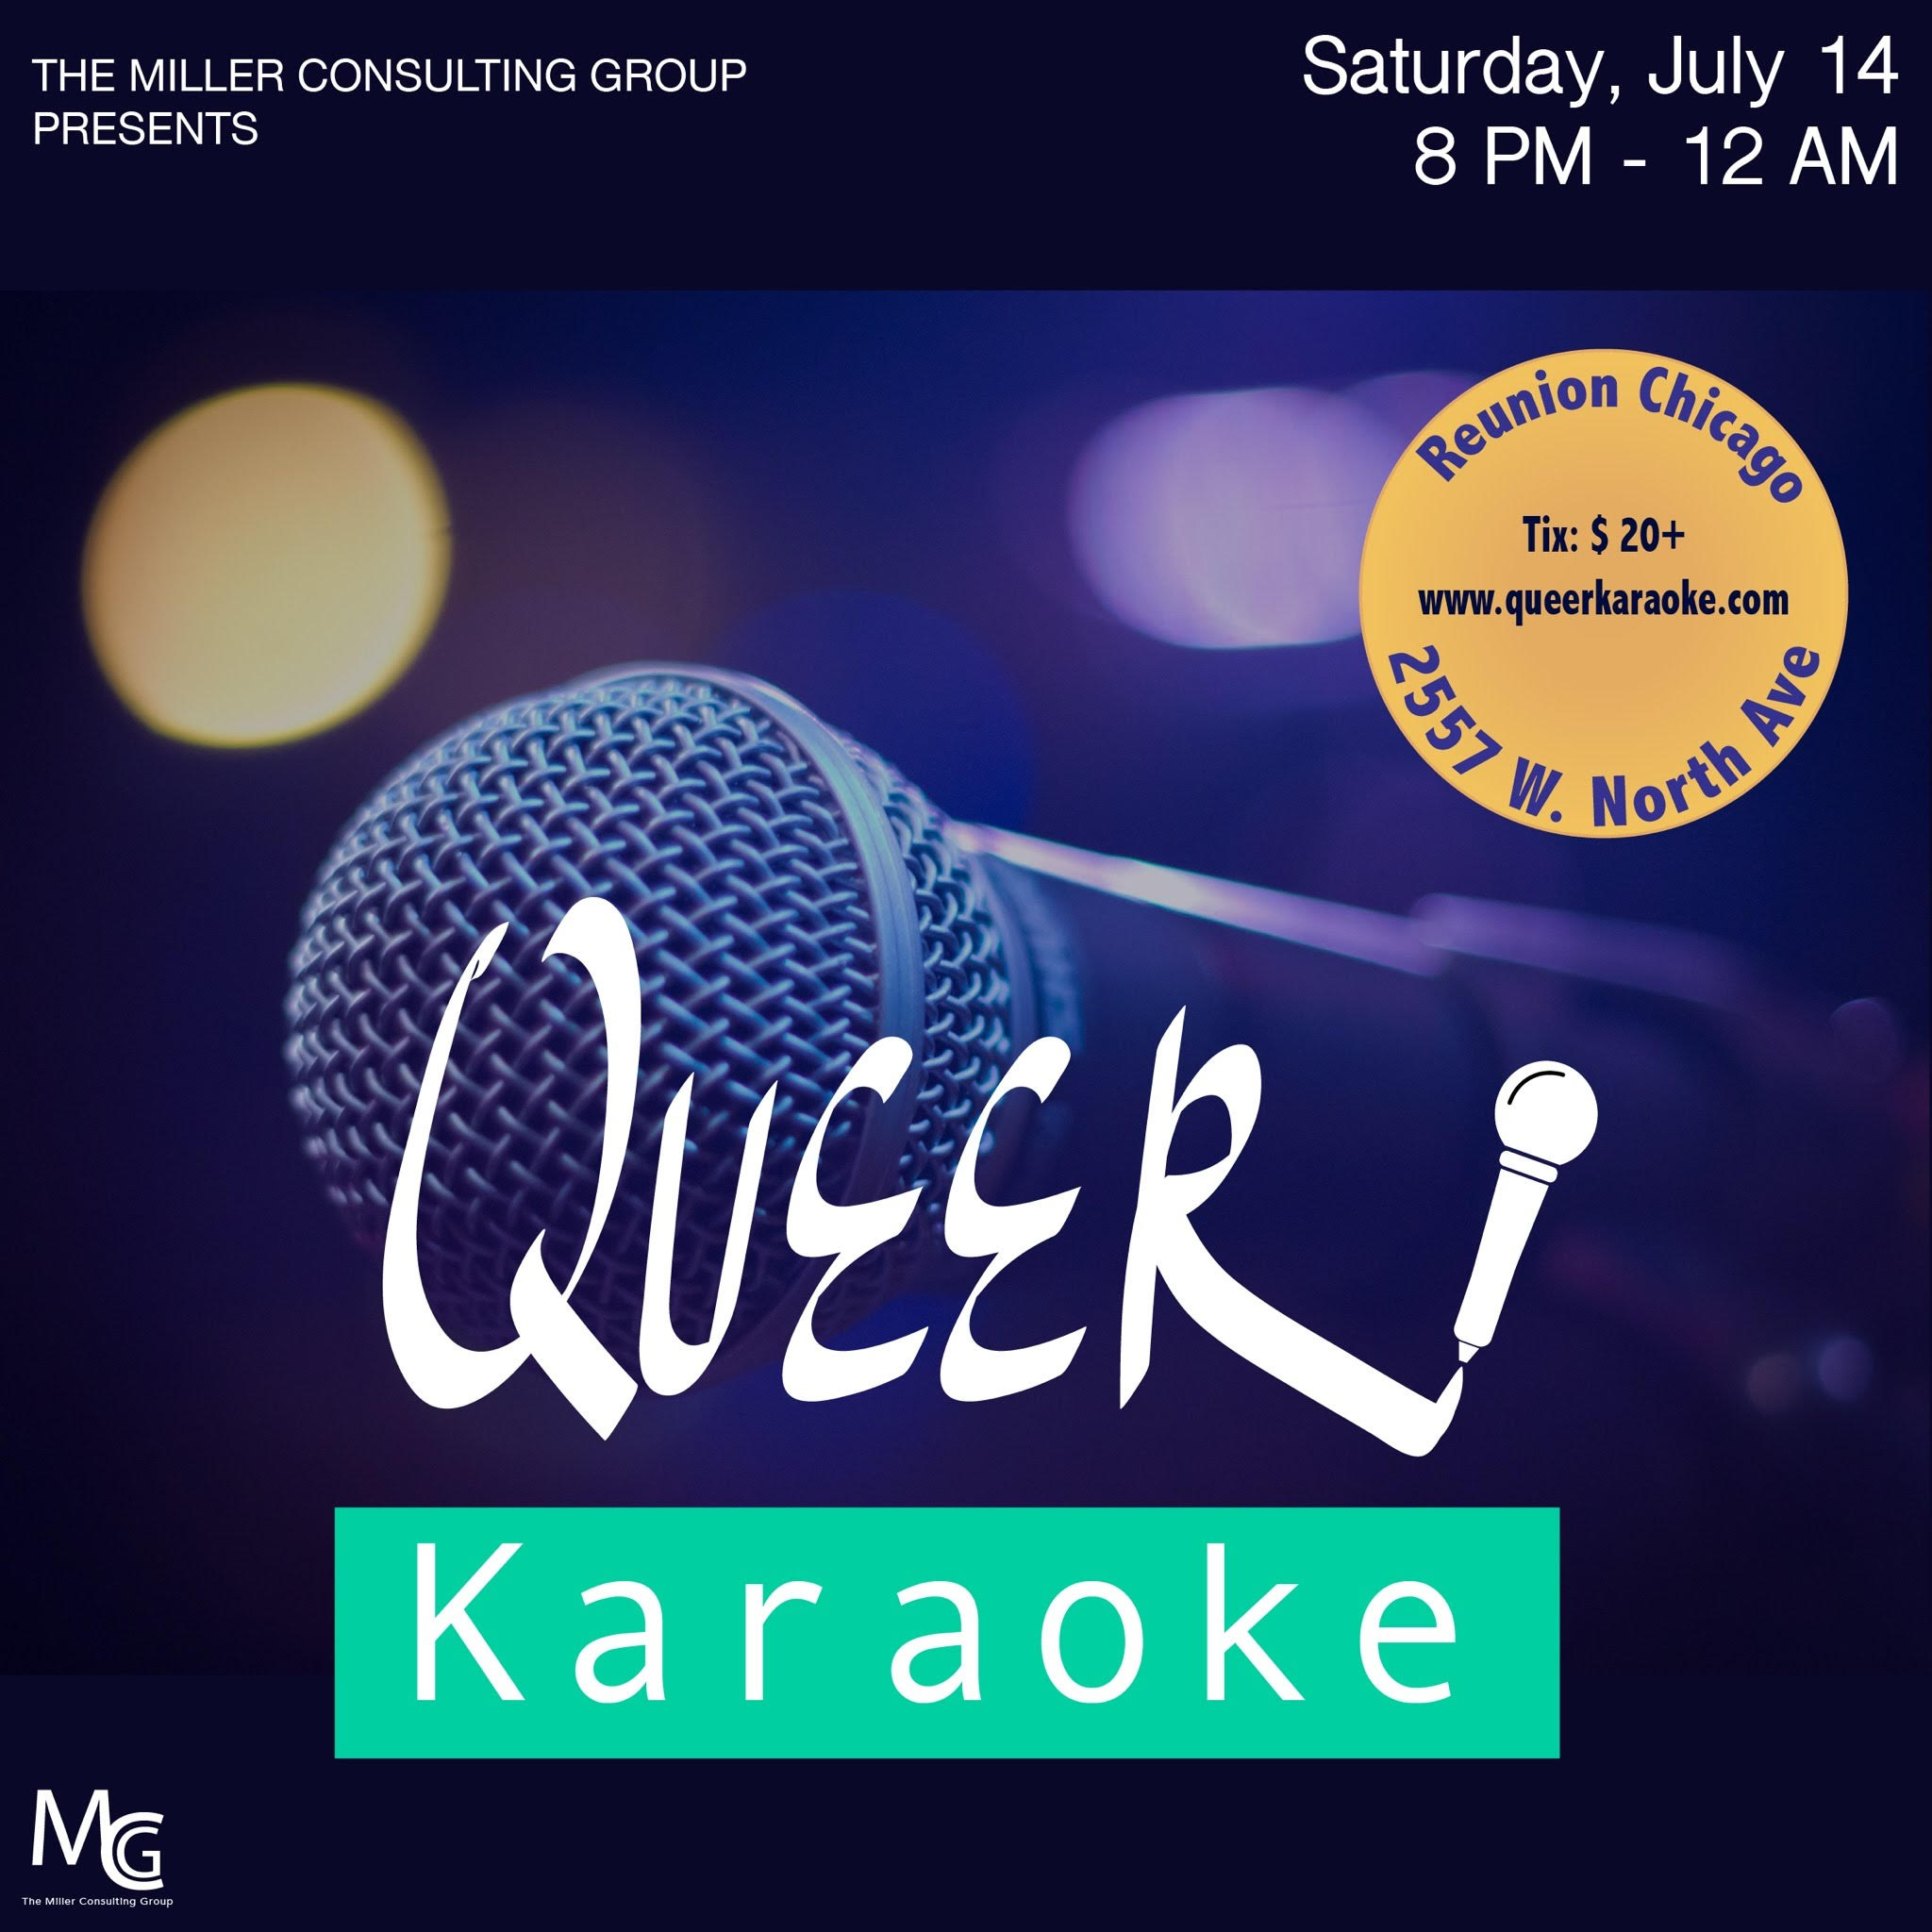 Queer-Karaoke-Miller-Consulting-Group-Chicago-Flyer